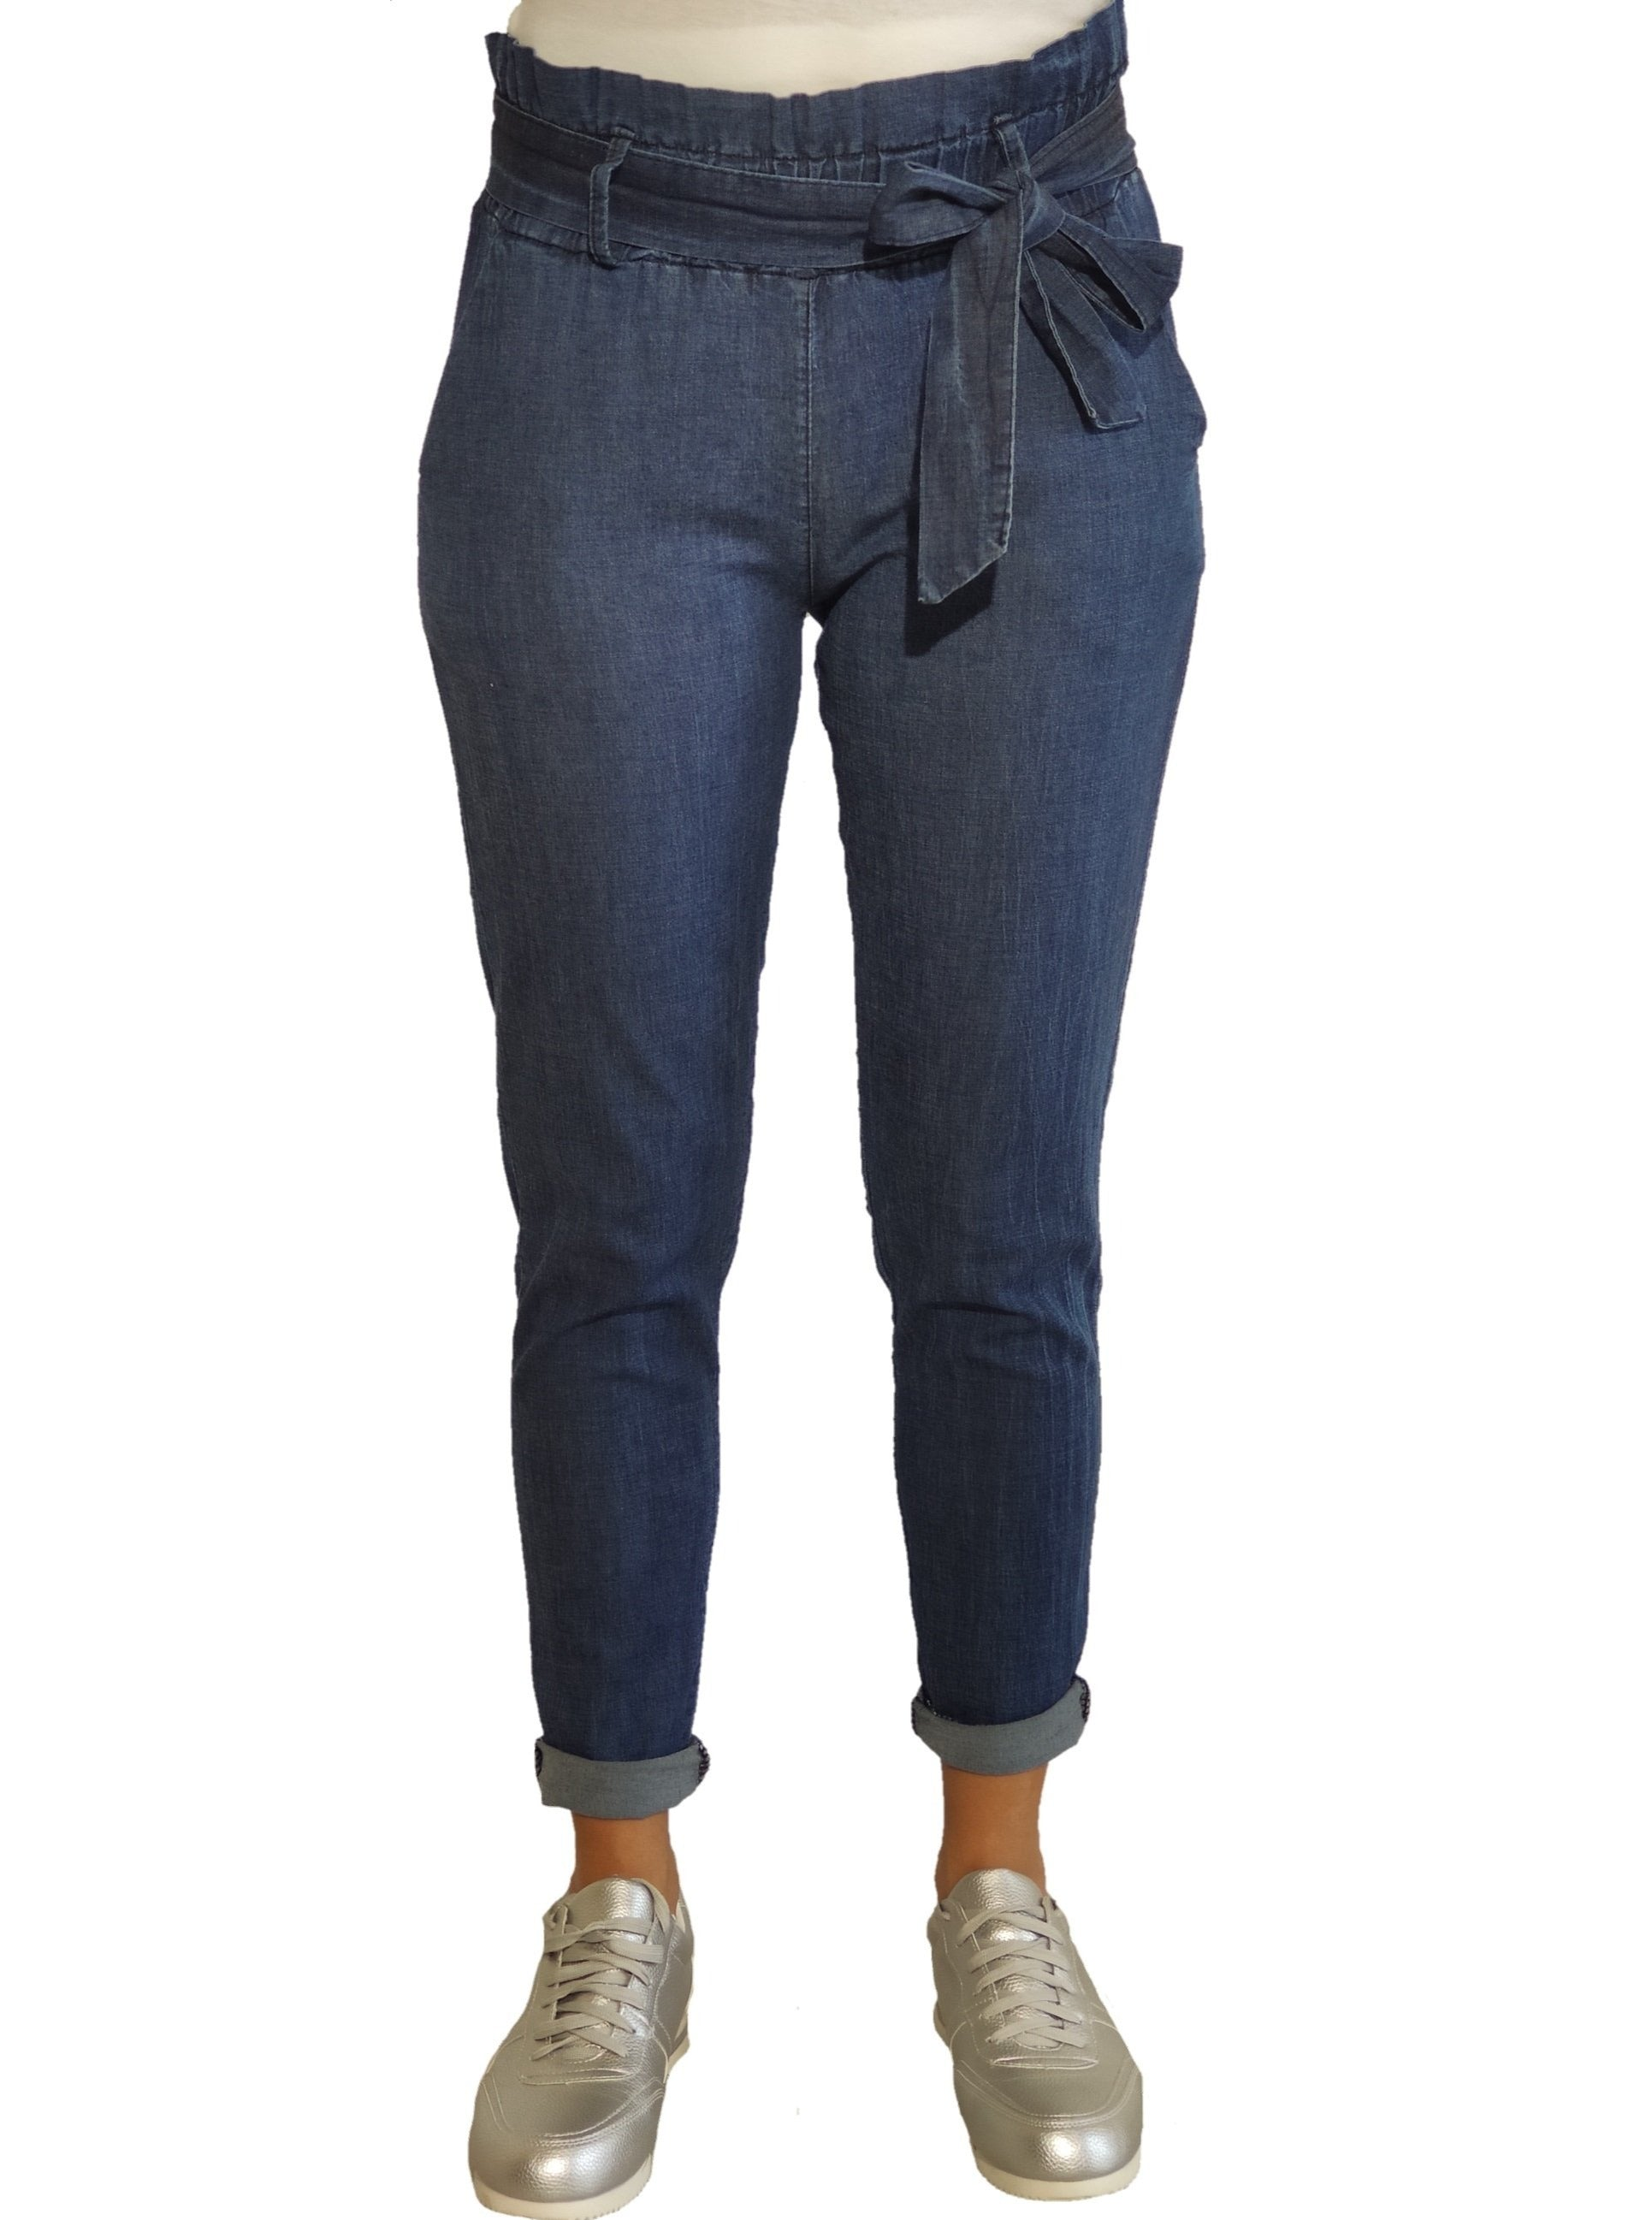 a-woman-wears-a-jean-trouser-with-bow-front-side